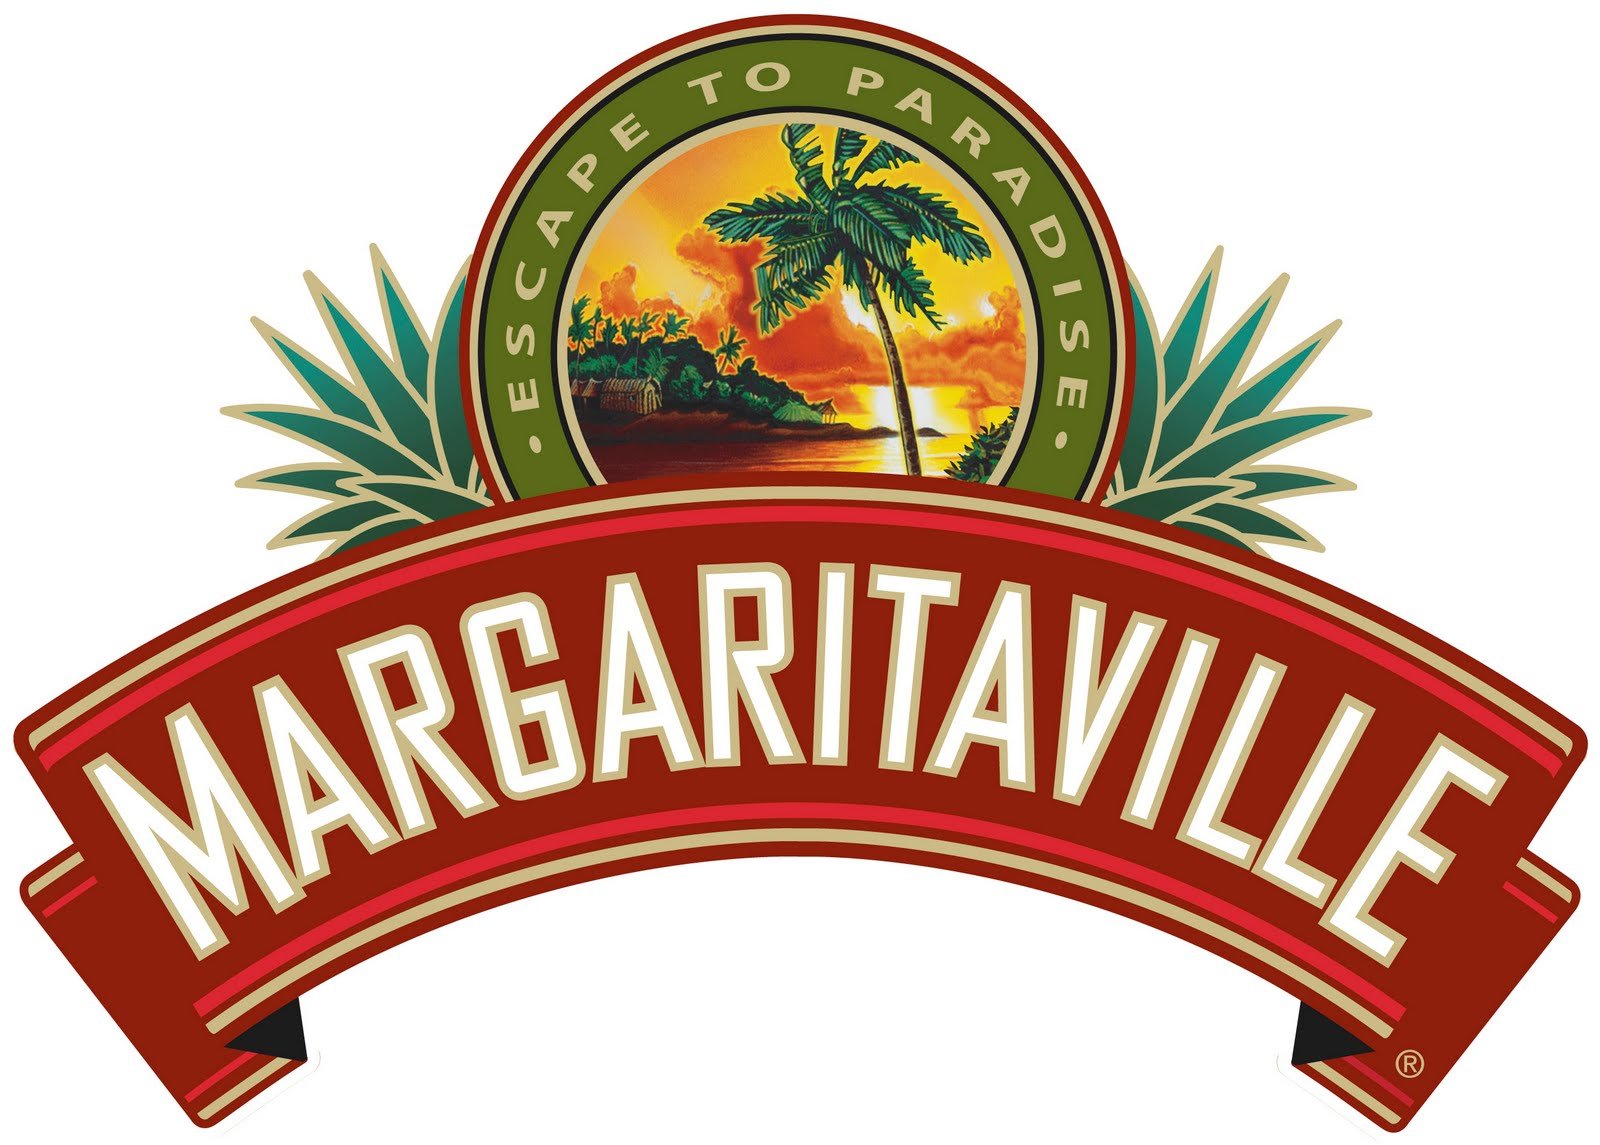 Free Margaritaville Cliparts, Download Free Clip Art, Free.